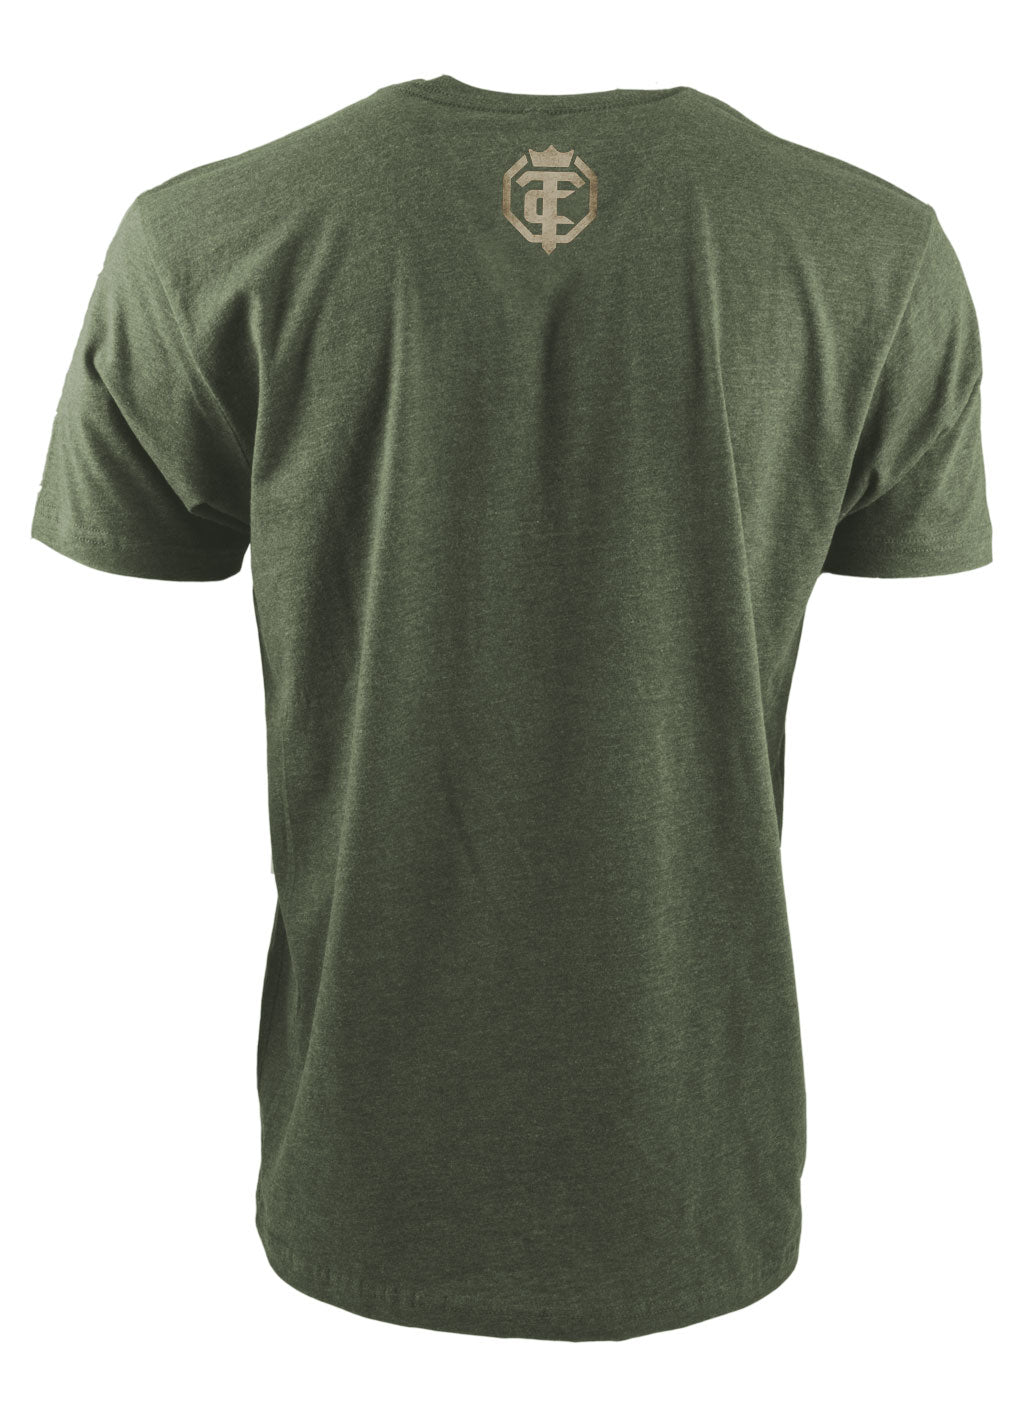 Open The Cage - Woodland Military Green Men's Tee